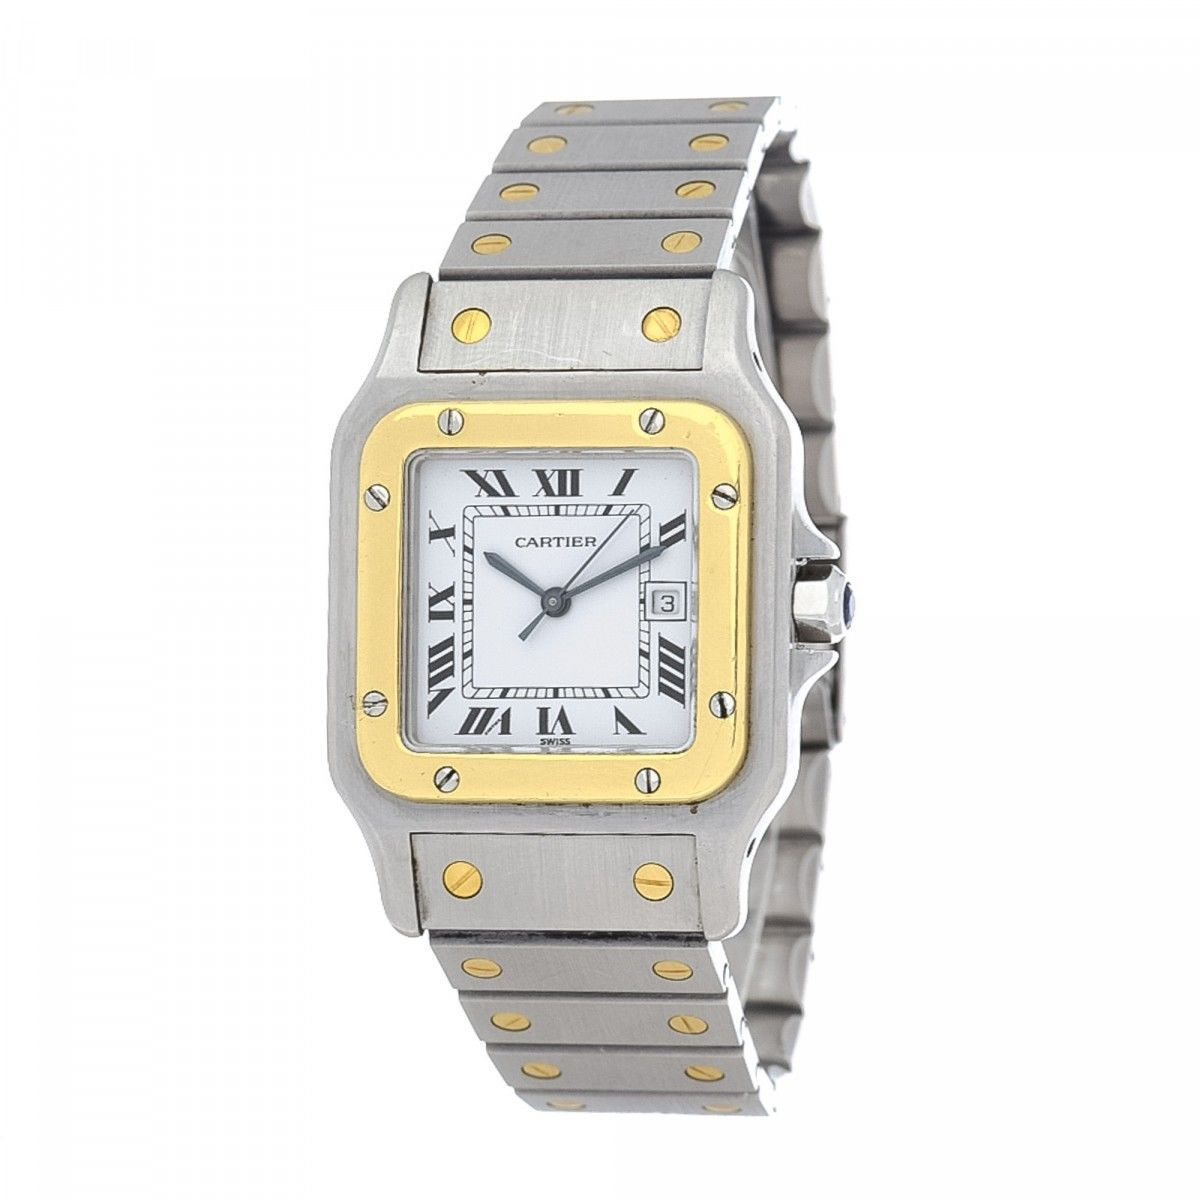 selector watches p watch de goldsmiths santos cartier